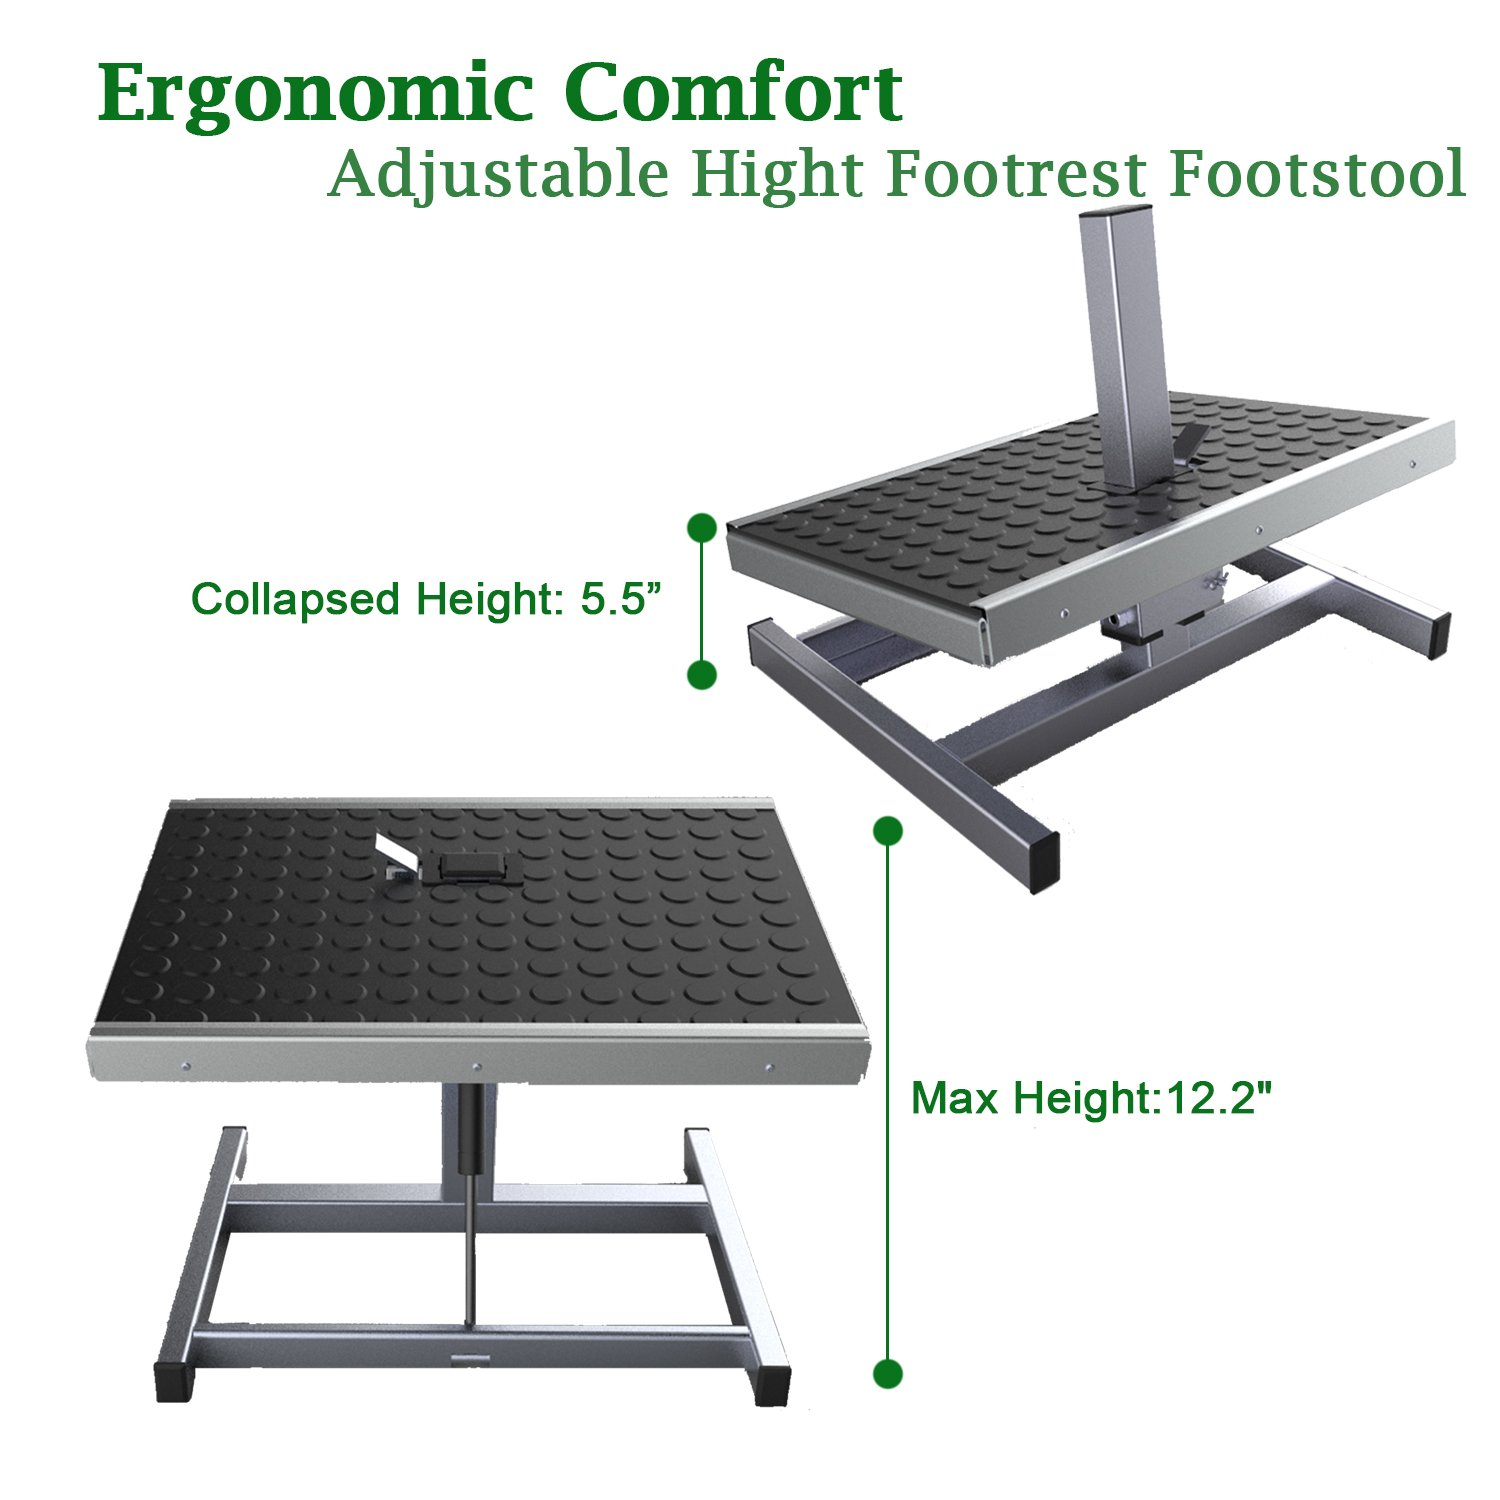 Annstory Auto Adjustable Footrest,Ergonomic Comfortable Height-Adjustable Footstool for Home and Office (Heavy Frame) by Annstory (Image #3)